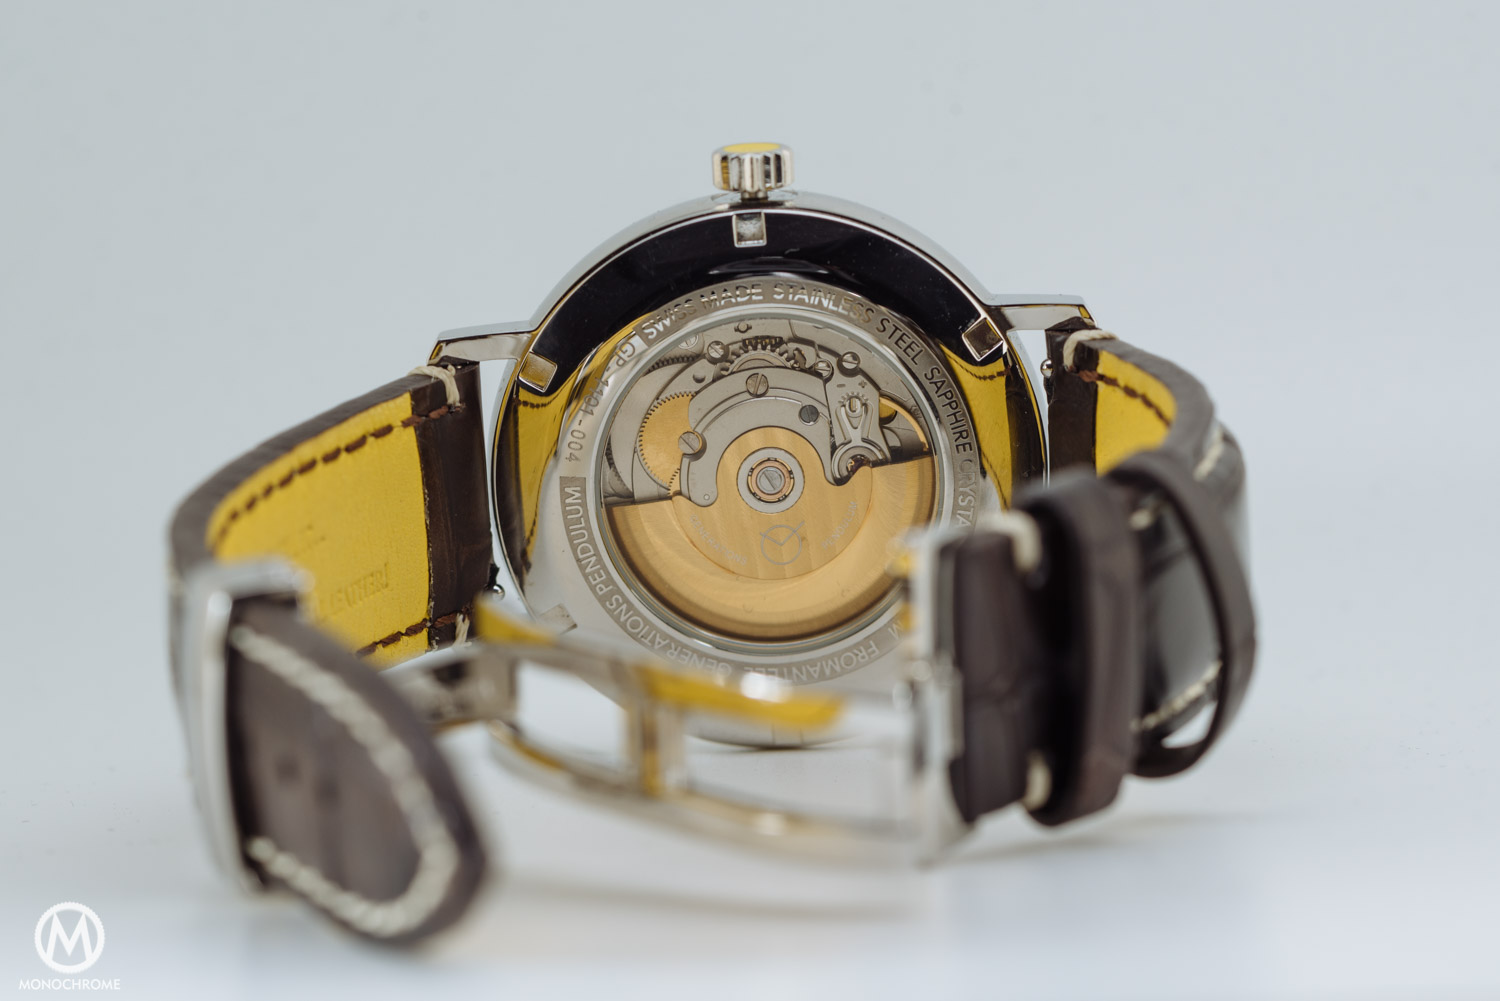 Fromanteel Pendulum automatic watch – Dutch – Value Proposition